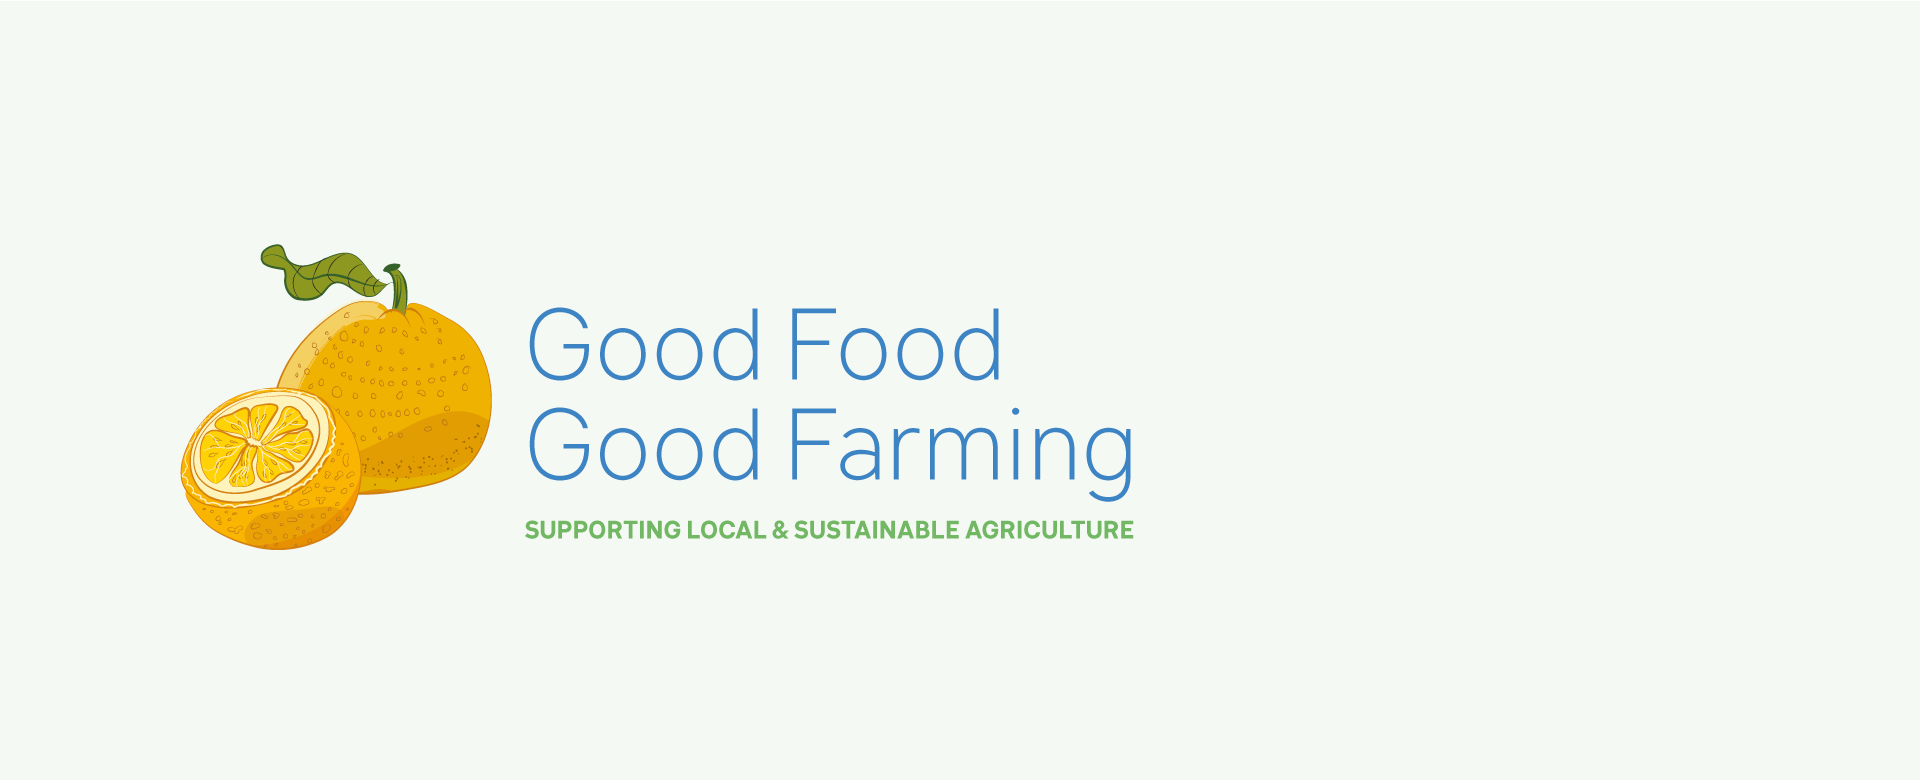 Good Food Good Farming